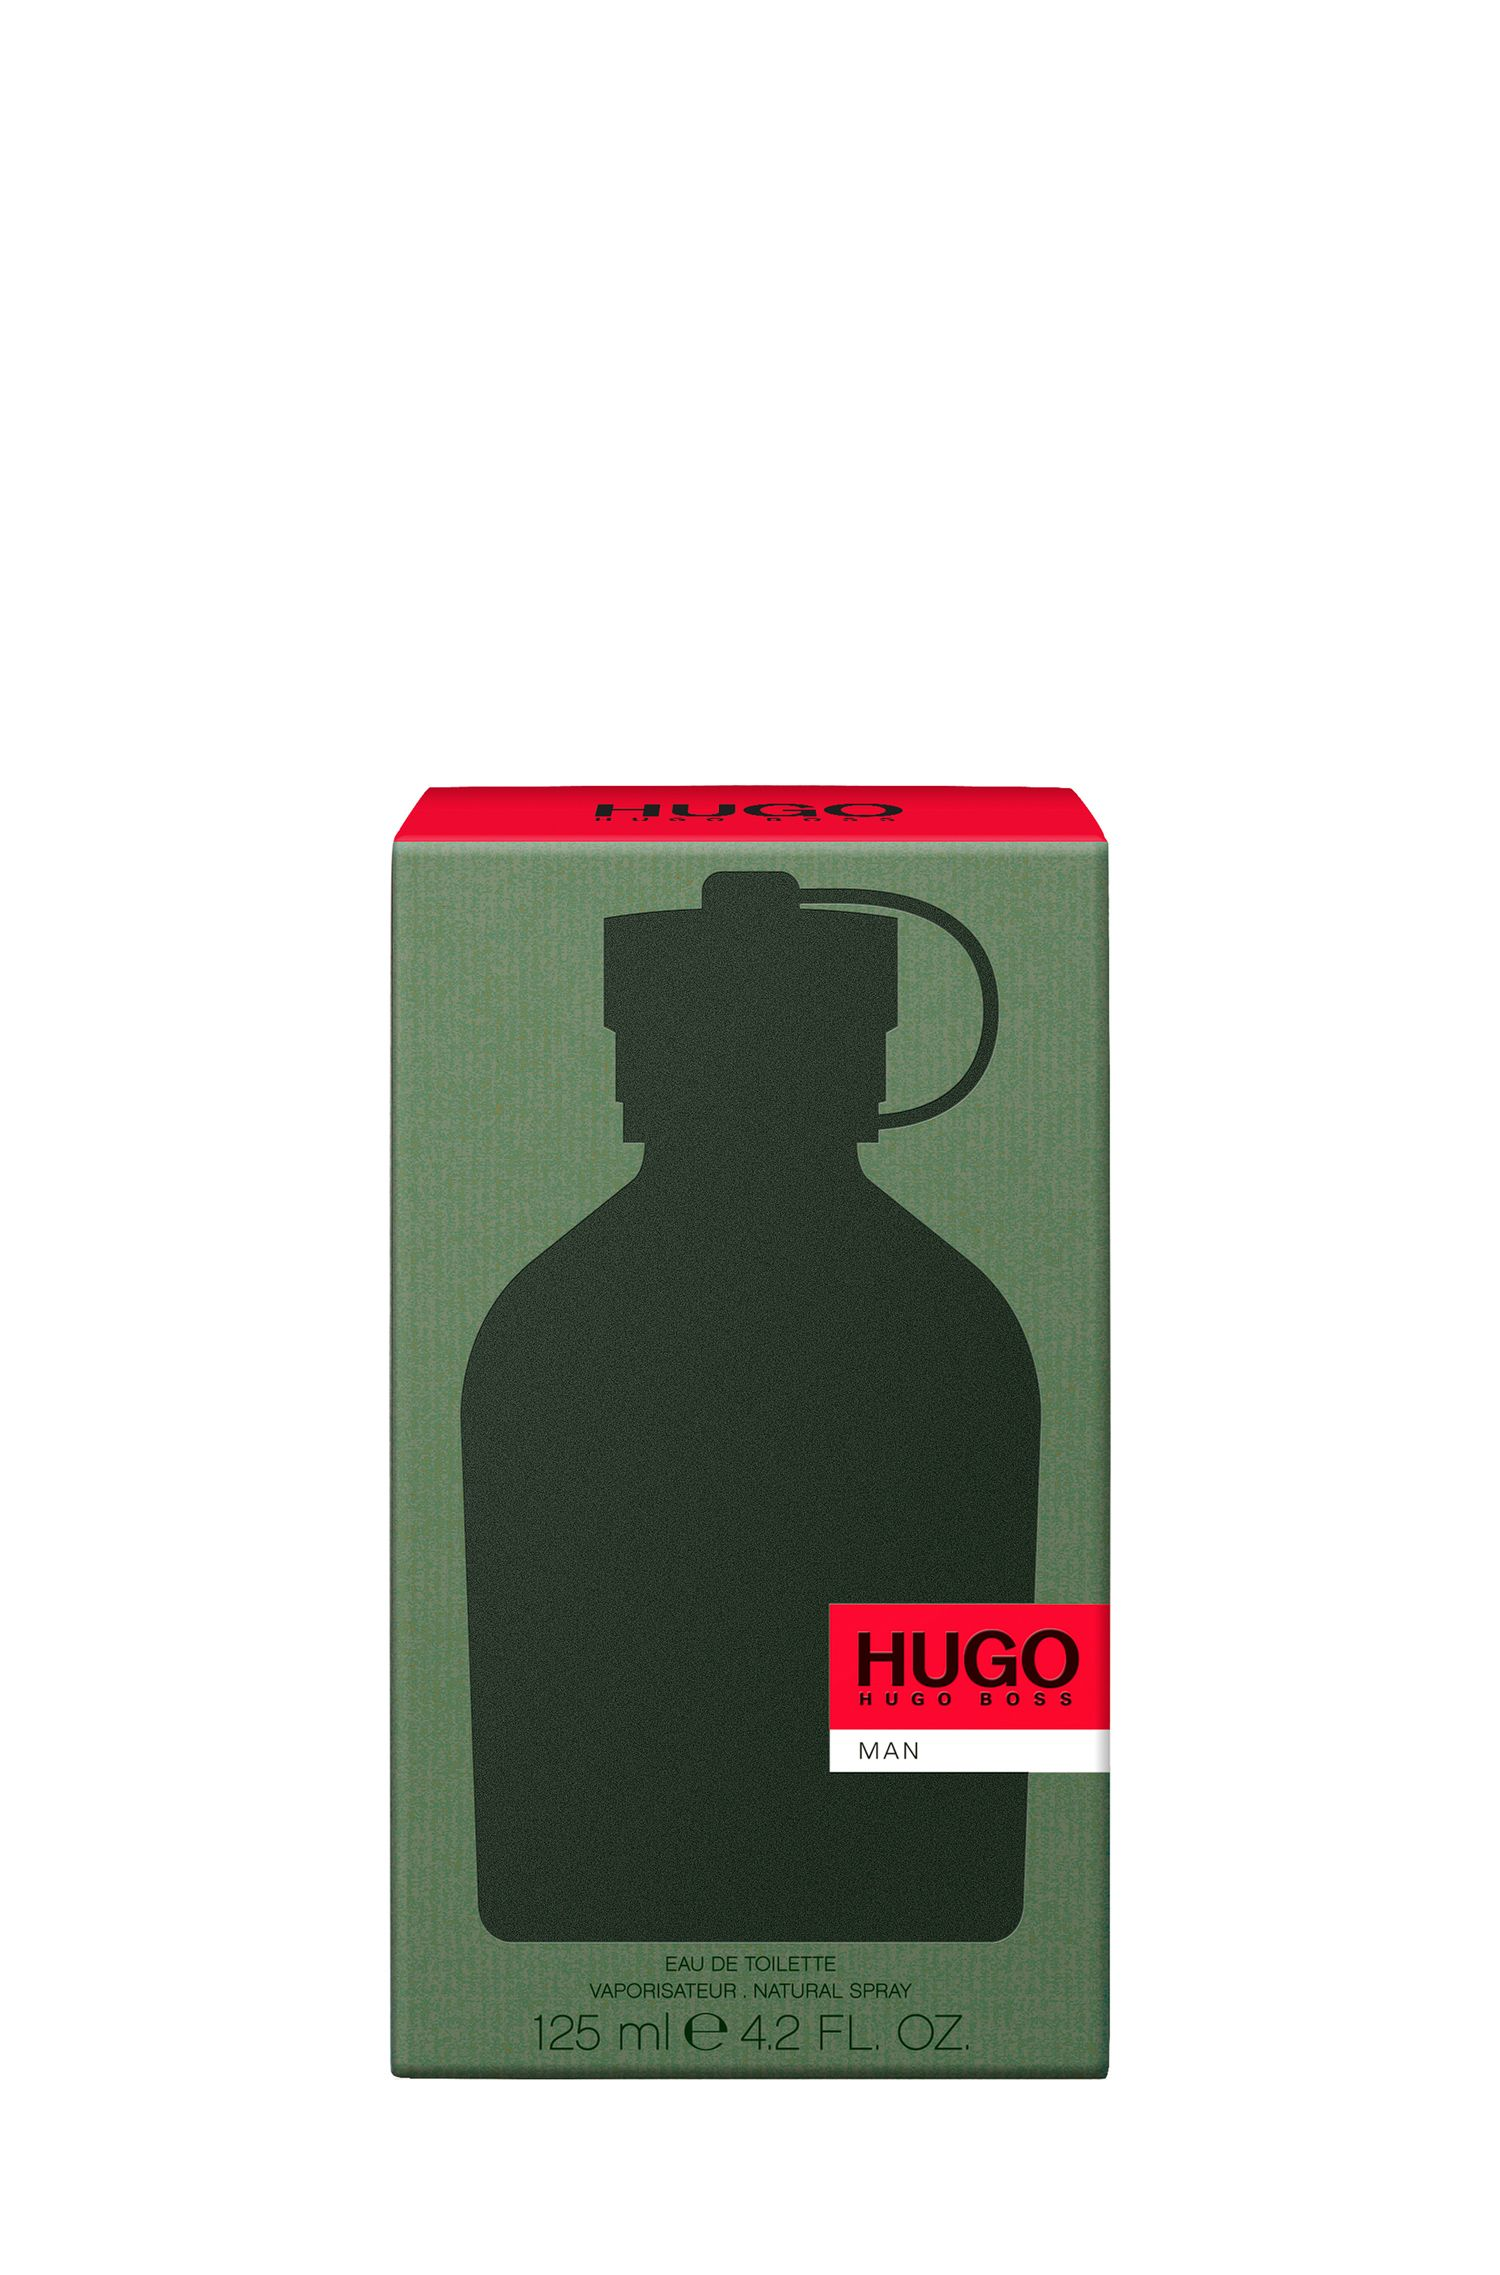 HUGO Man eau de toilette 125 ml